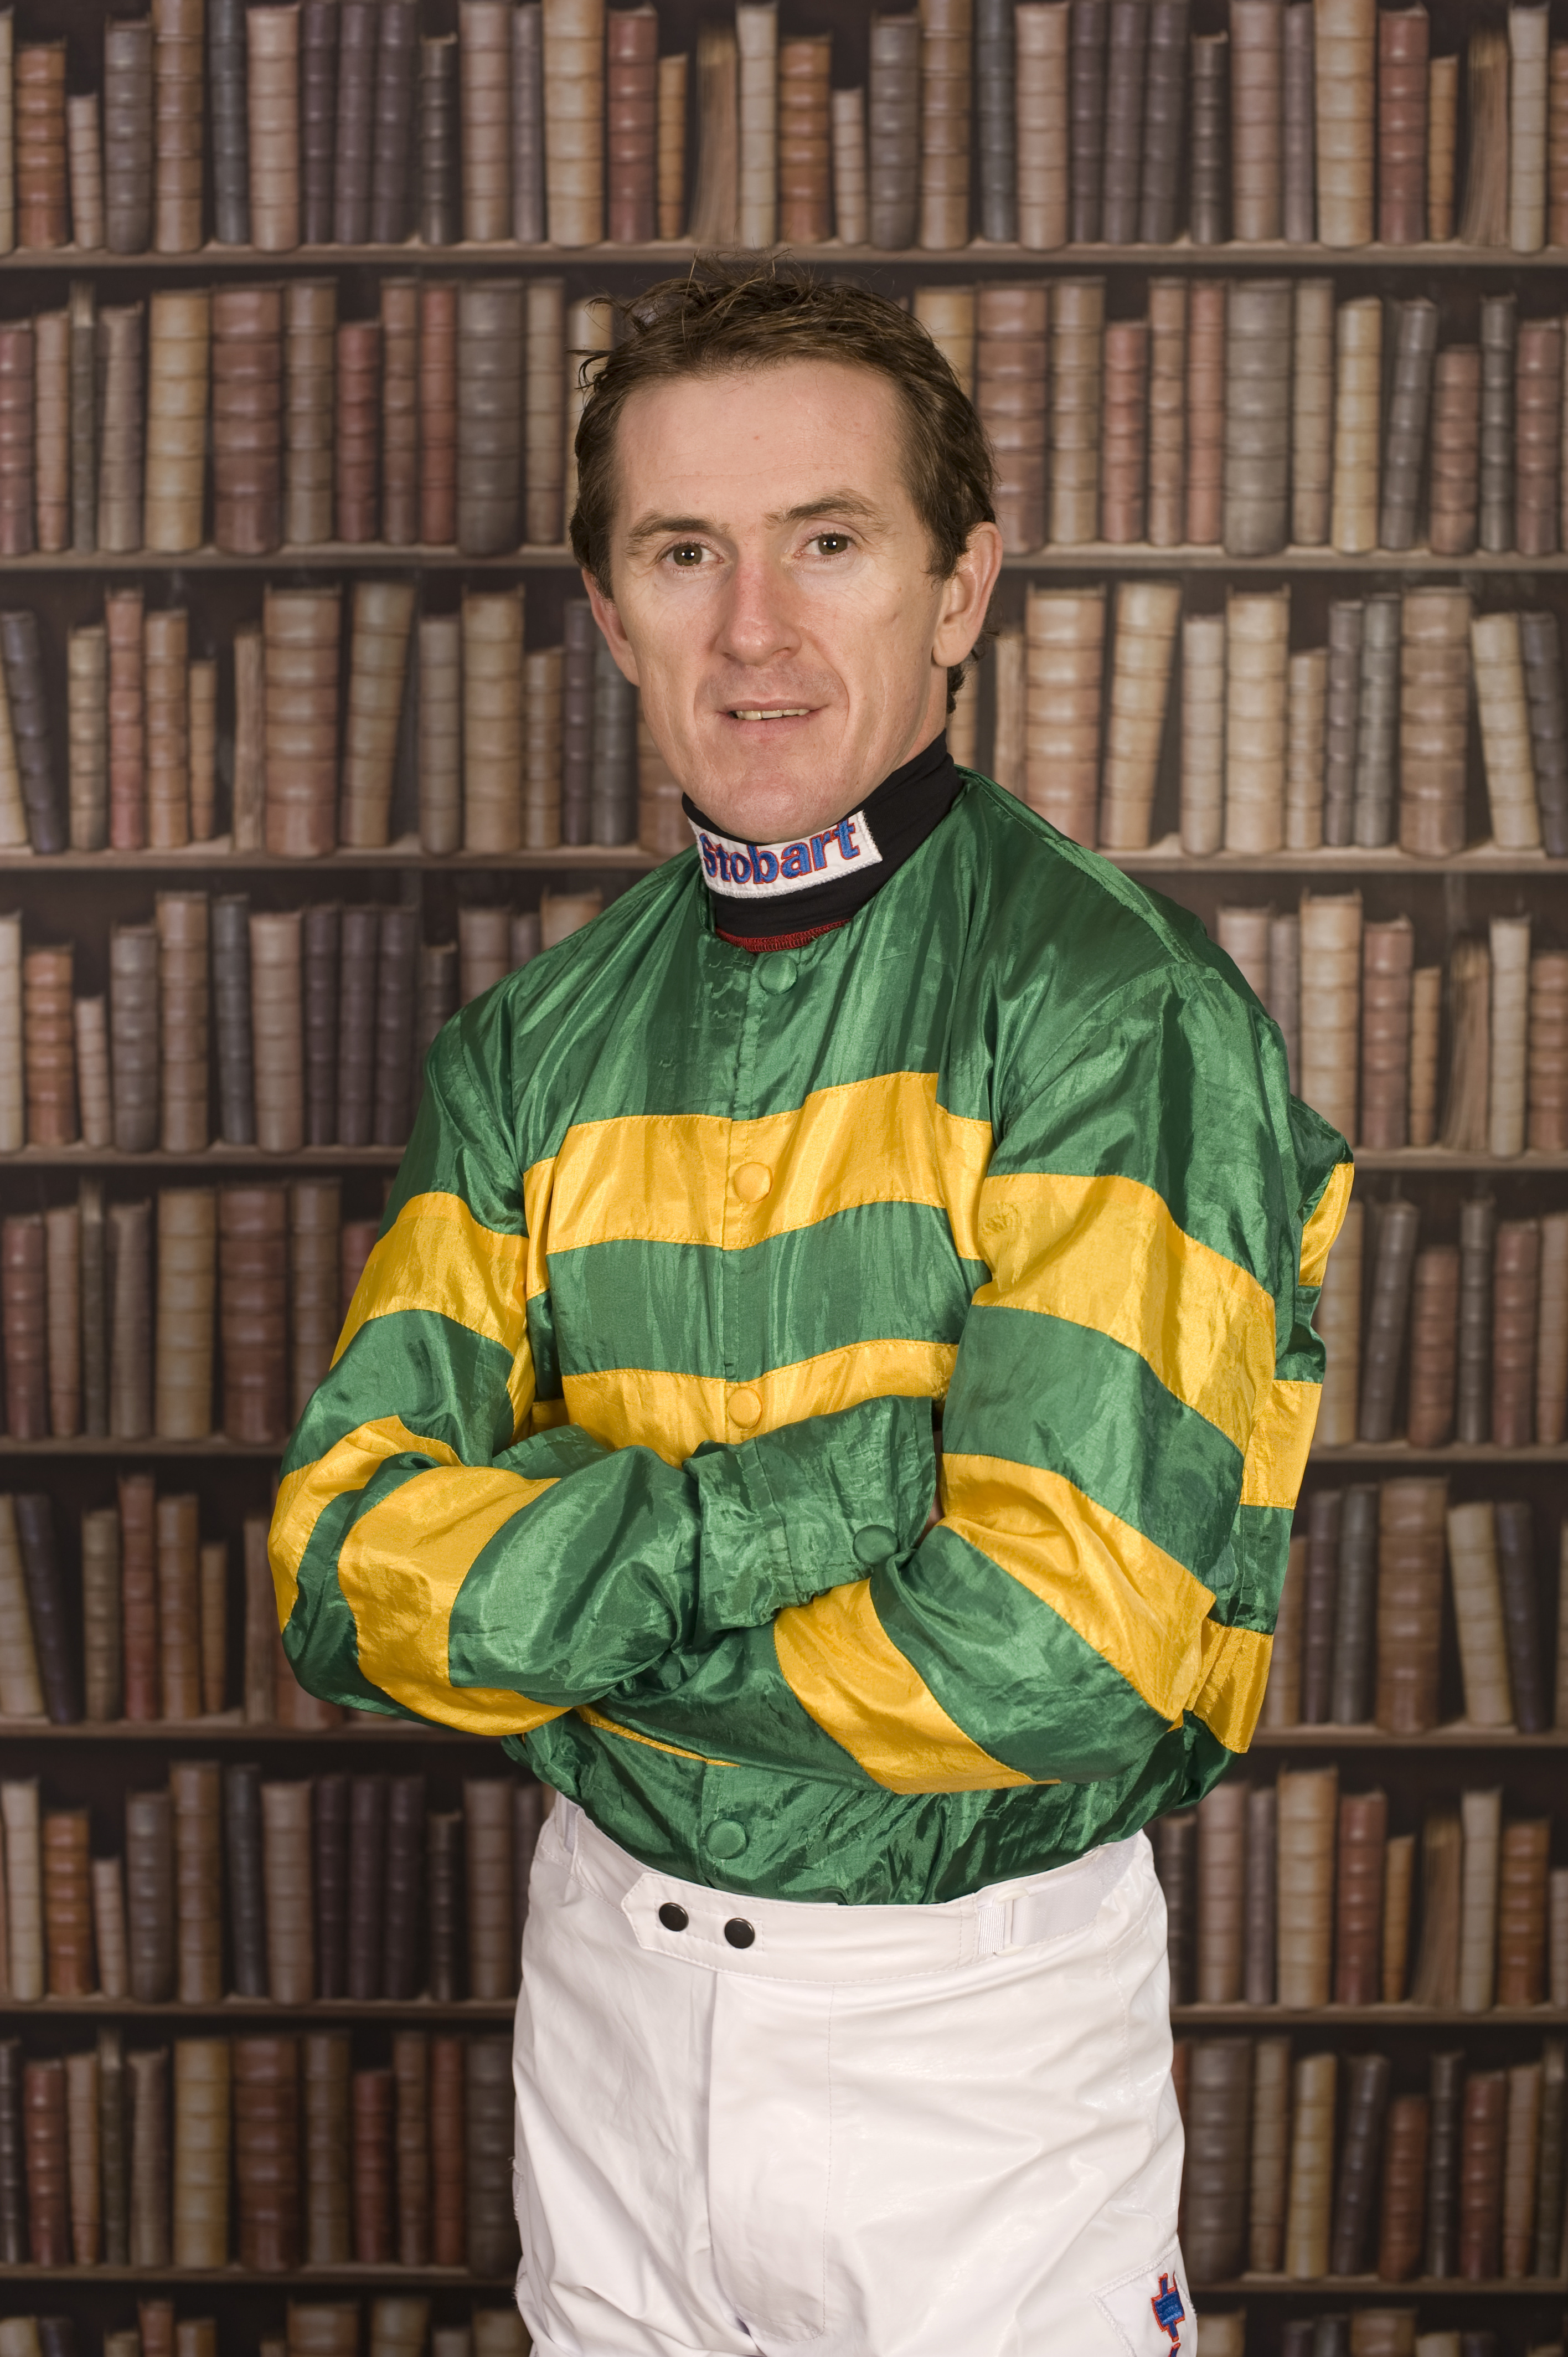 Tony McCoy: I don't know if my family and friends worry about me